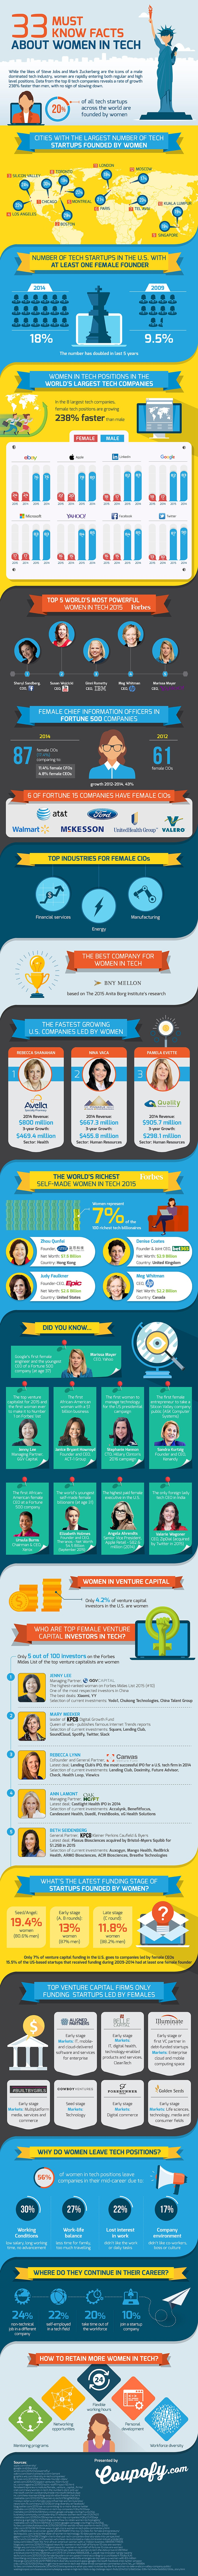 women-in-tech-infographic.jpg